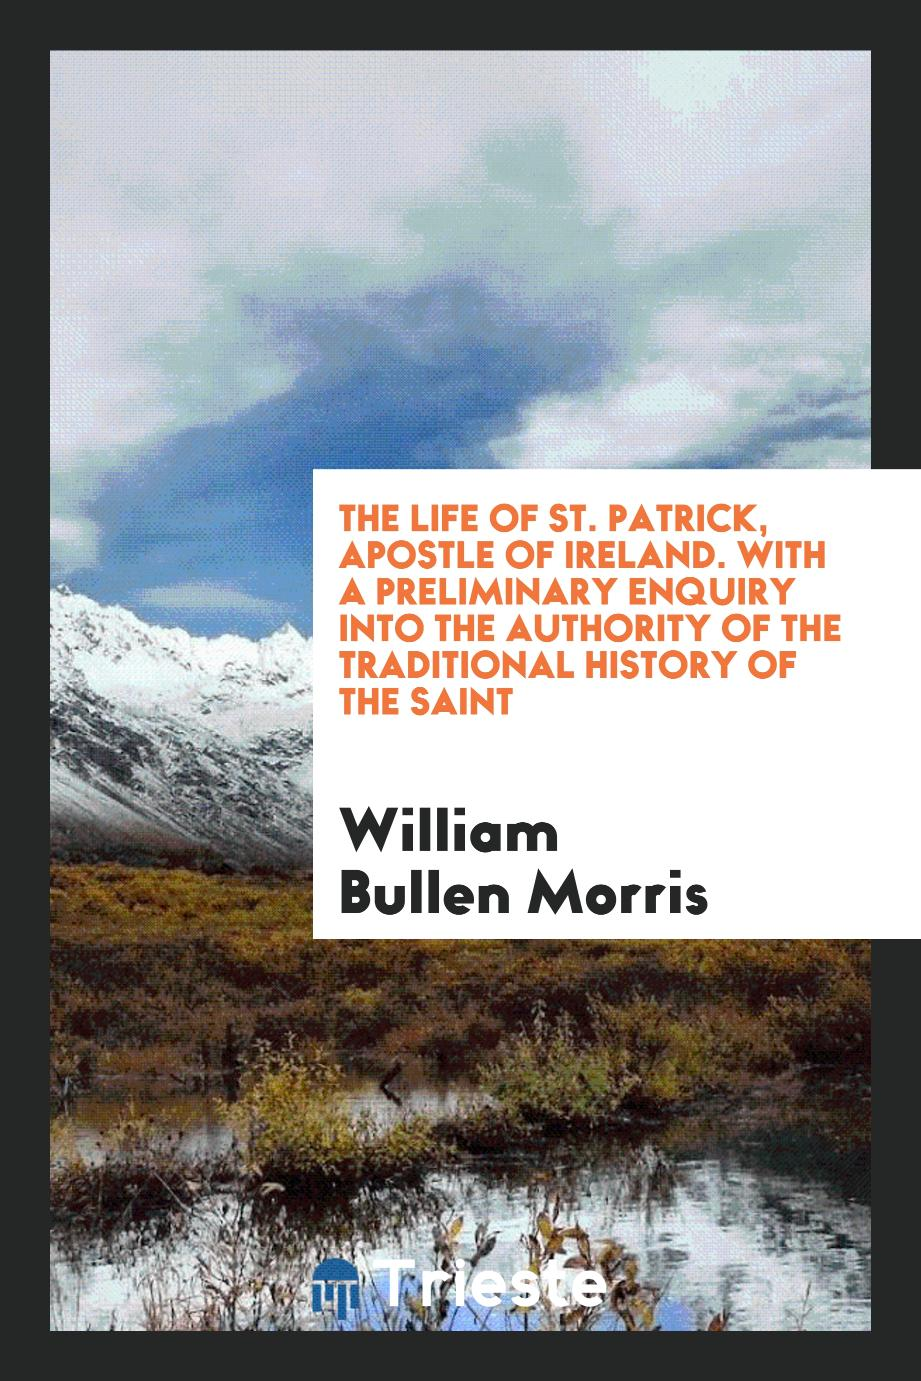 The Life of St. Patrick, Apostle of Ireland. With a Preliminary Enquiry into the Authority of the Traditional History of the Saint